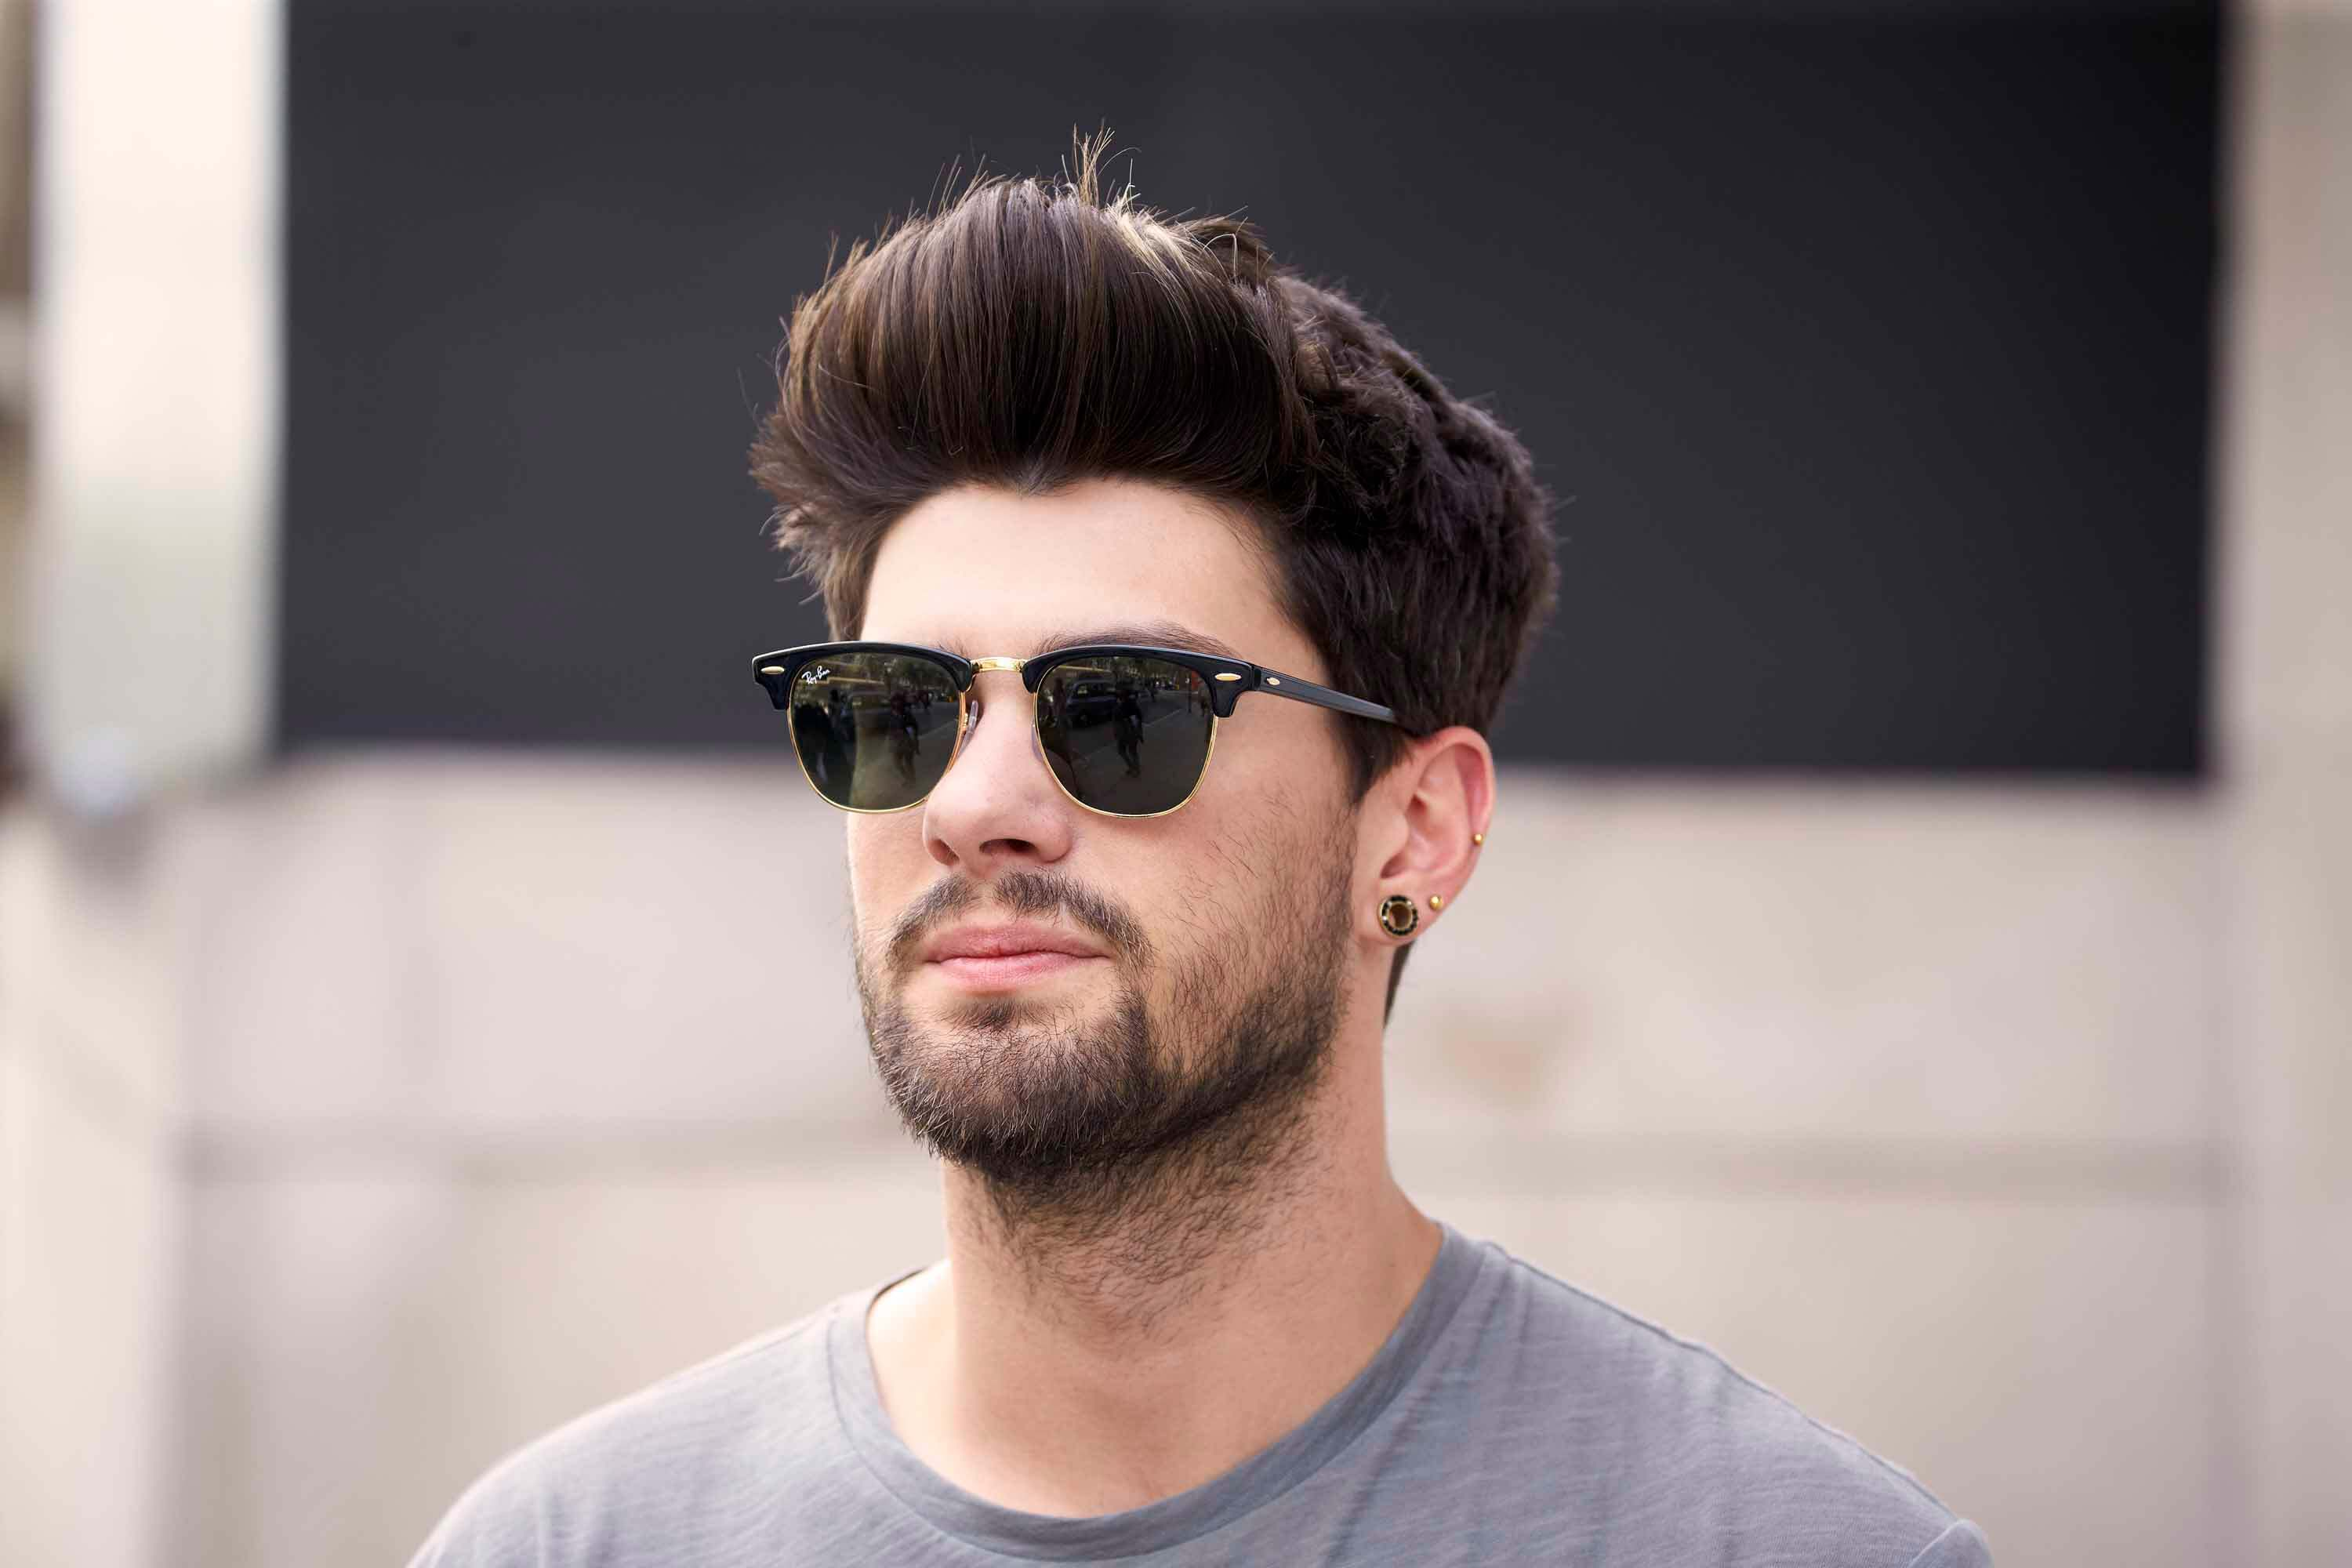 Haircuts for Thick Hair: 5 Styles for Men | All Things Hair US